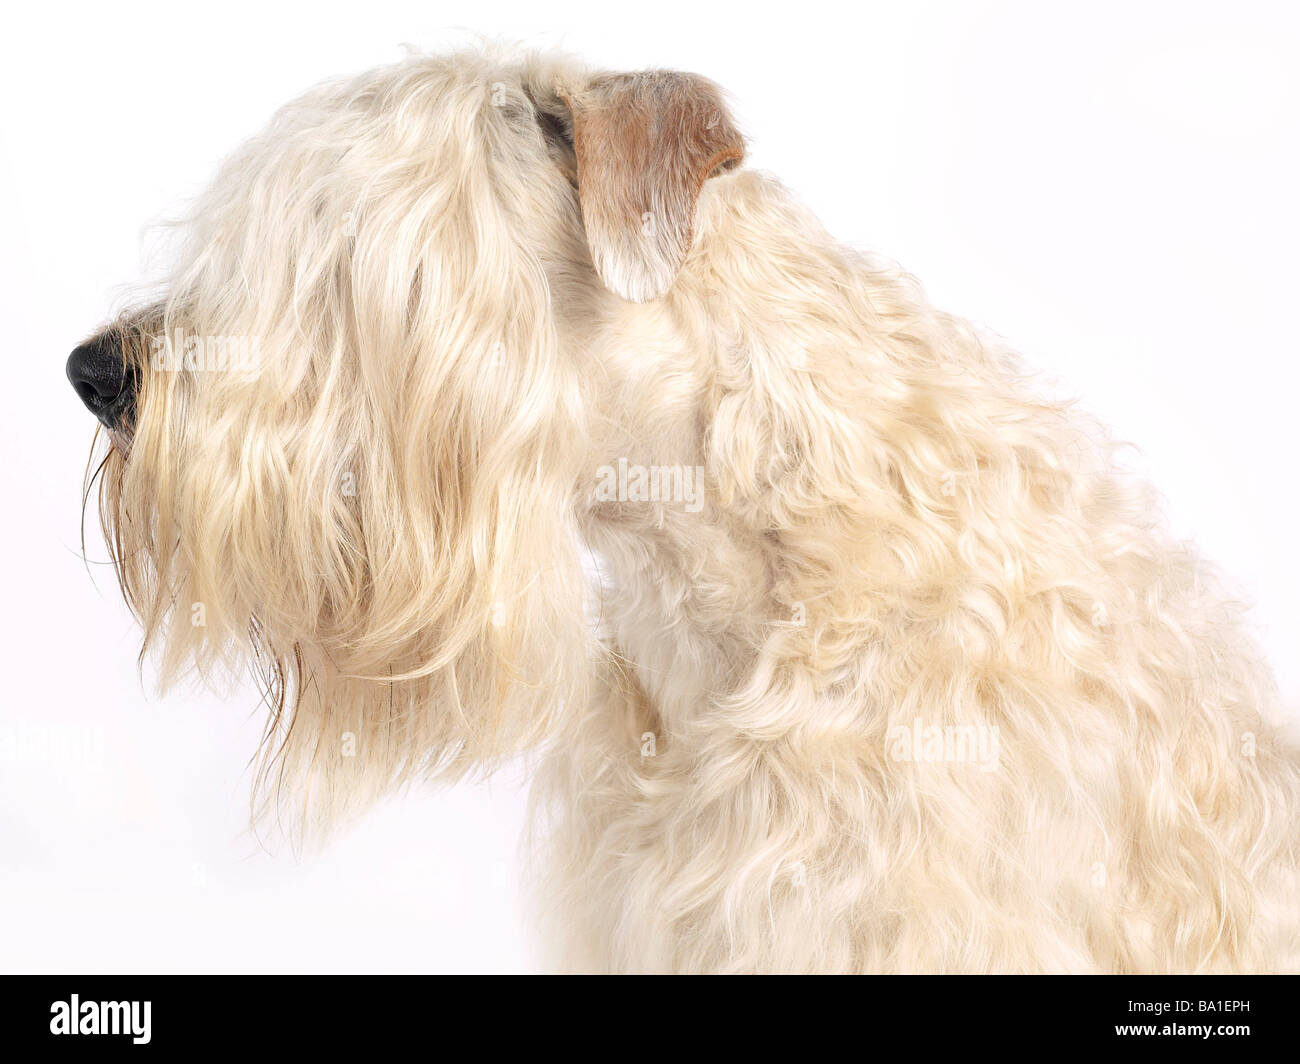 A portrait  of a soft coated wheaten terrier - Stock Image